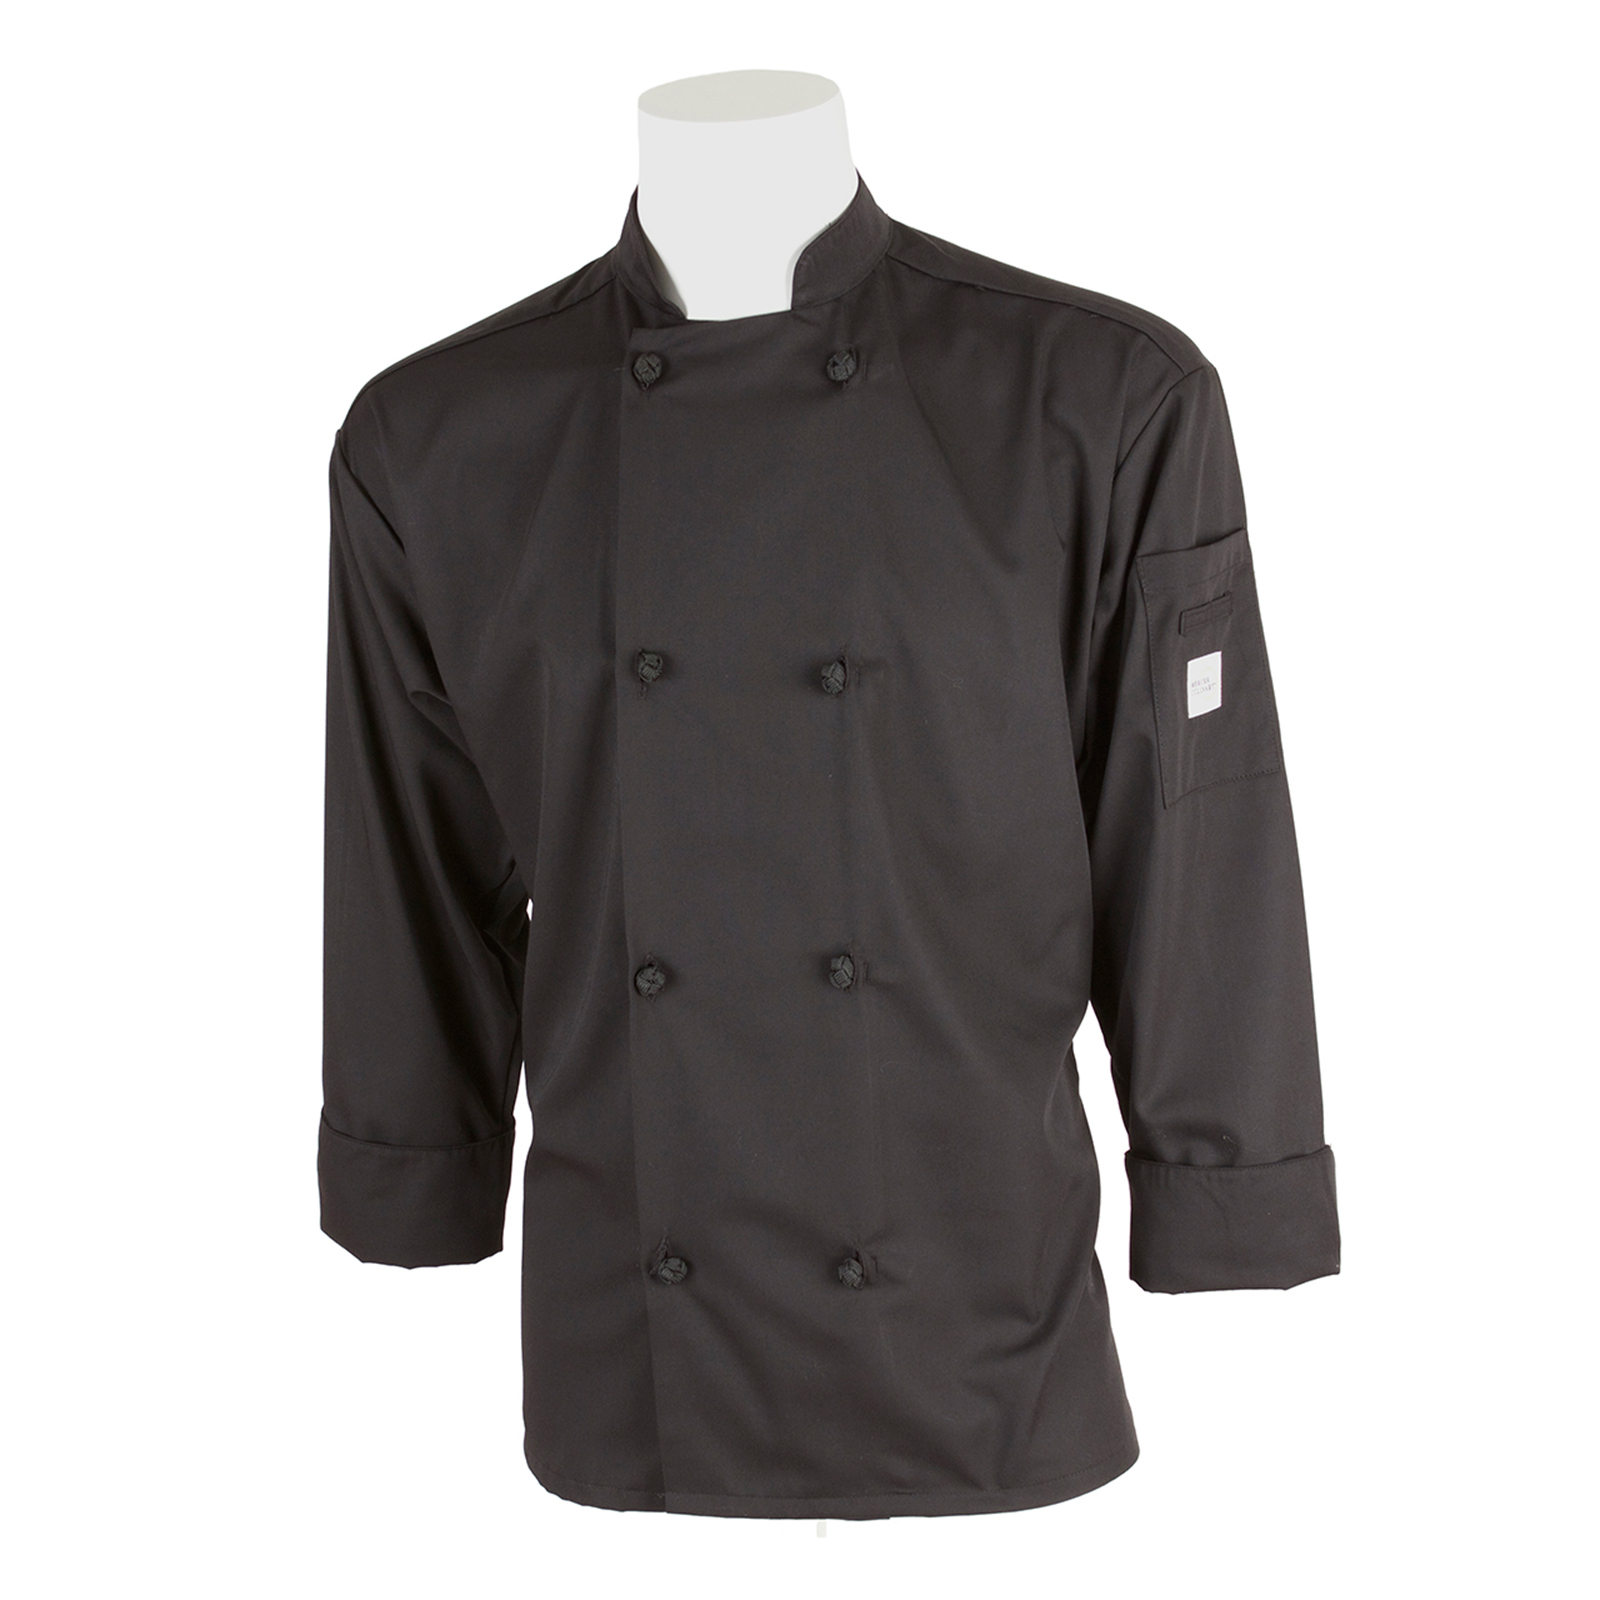 Mercer Culinary M60012BK2X chef's coat